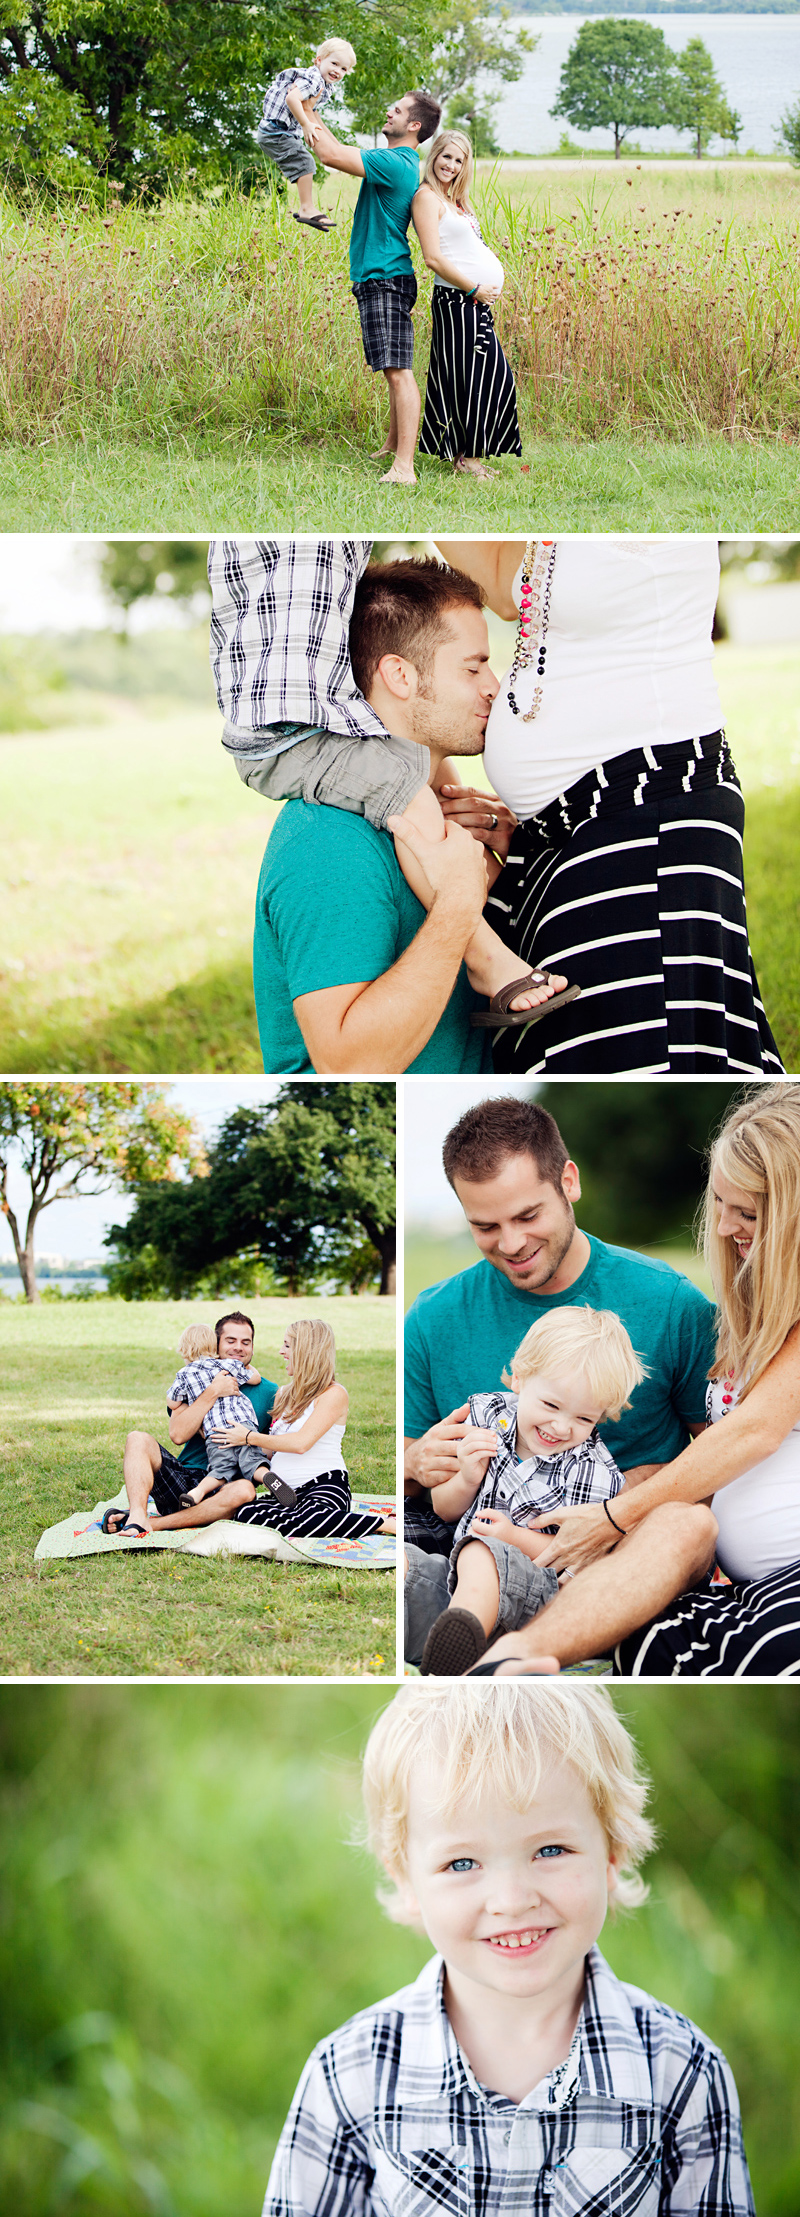 Dallas-Family-Photographerc001